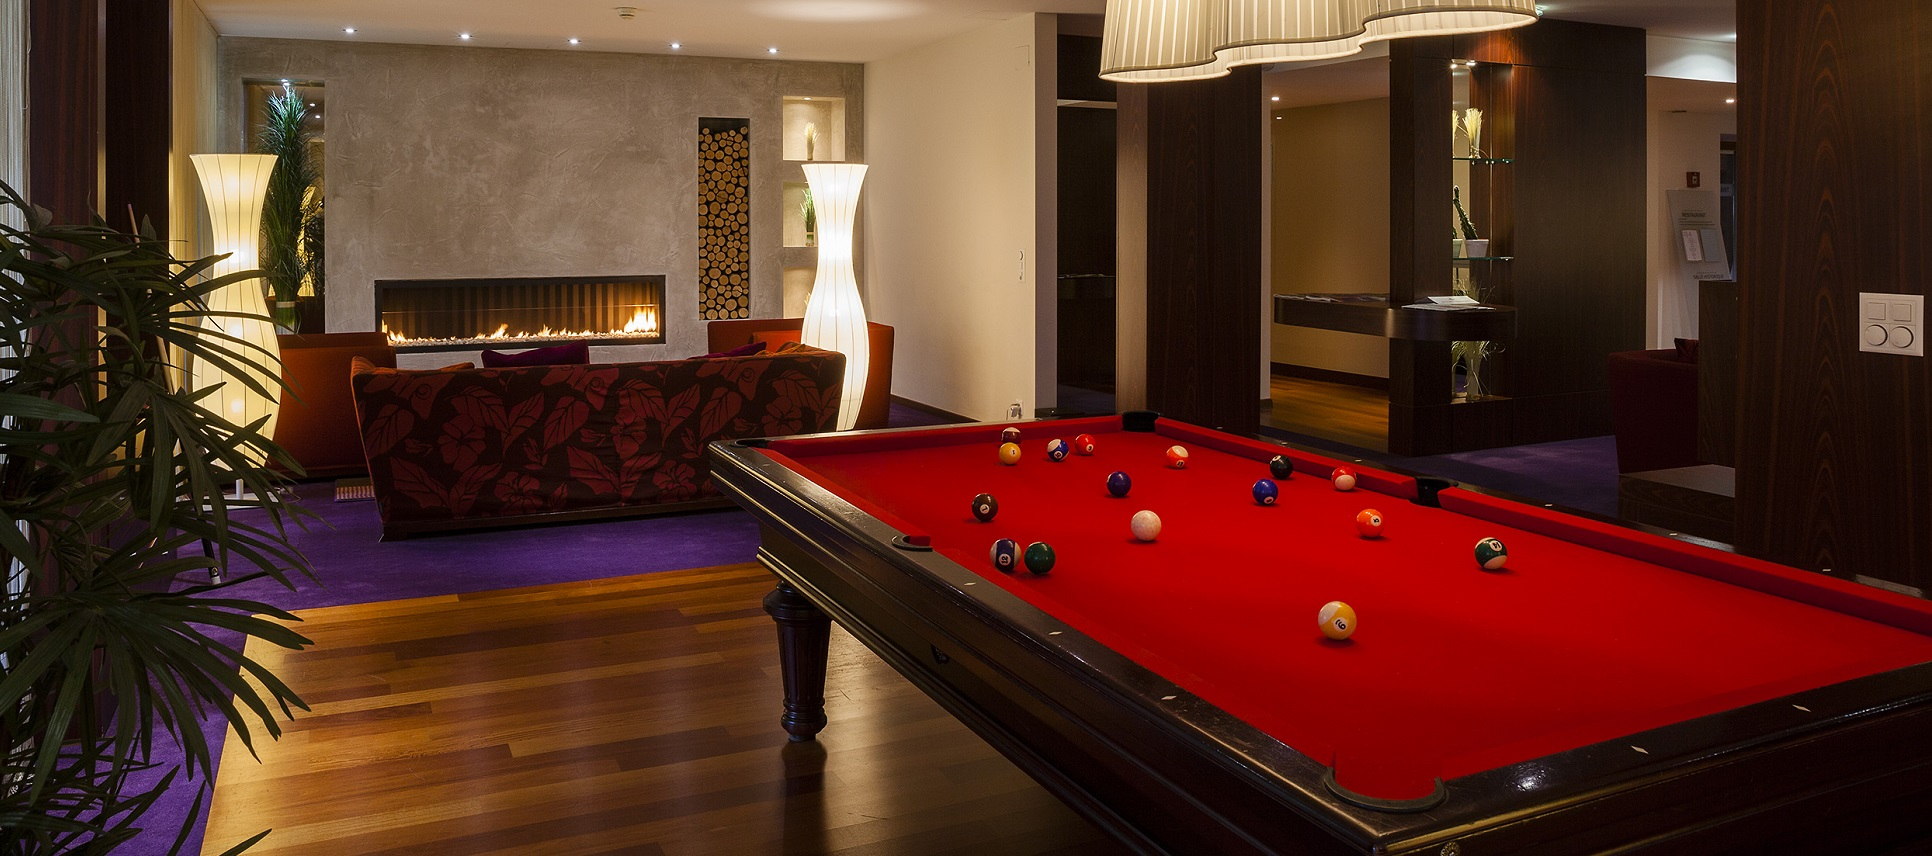 Billiards for those who are game